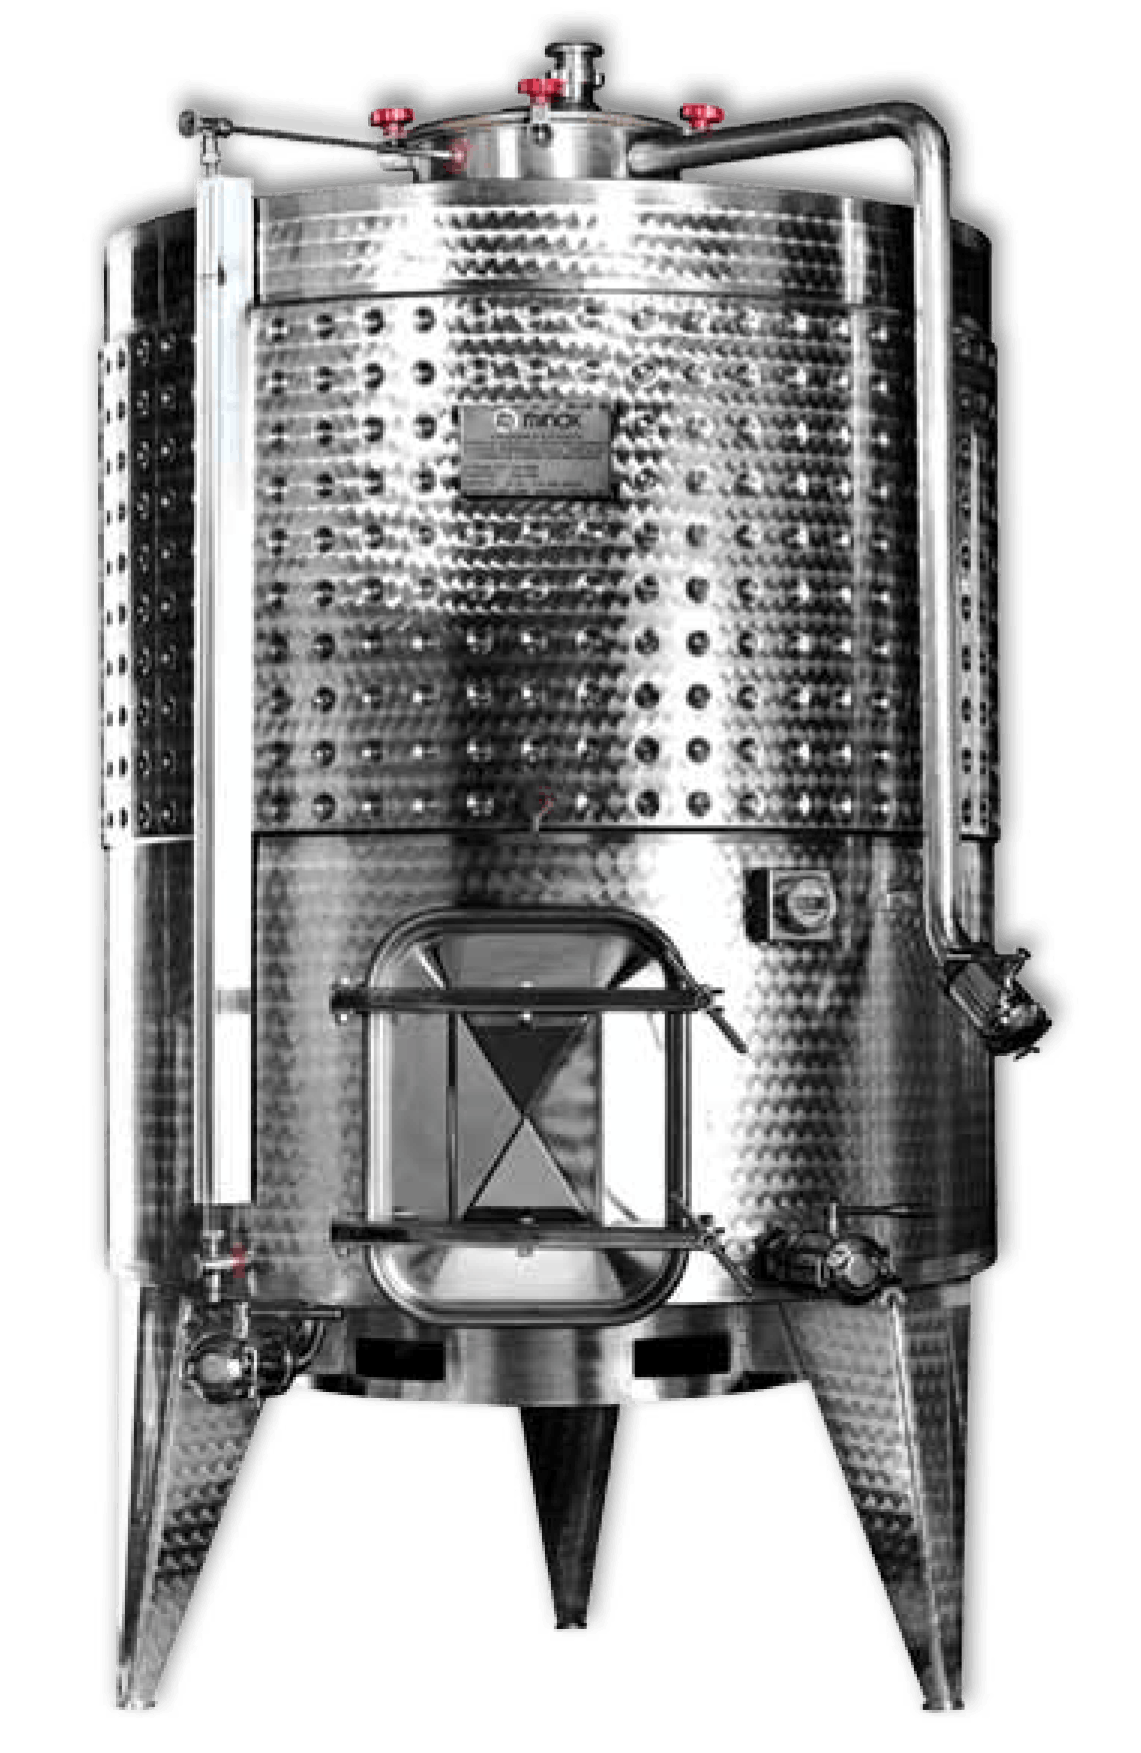 Variable Capacity / Conical Bottom Wine tank sold by Filter Process & Supply